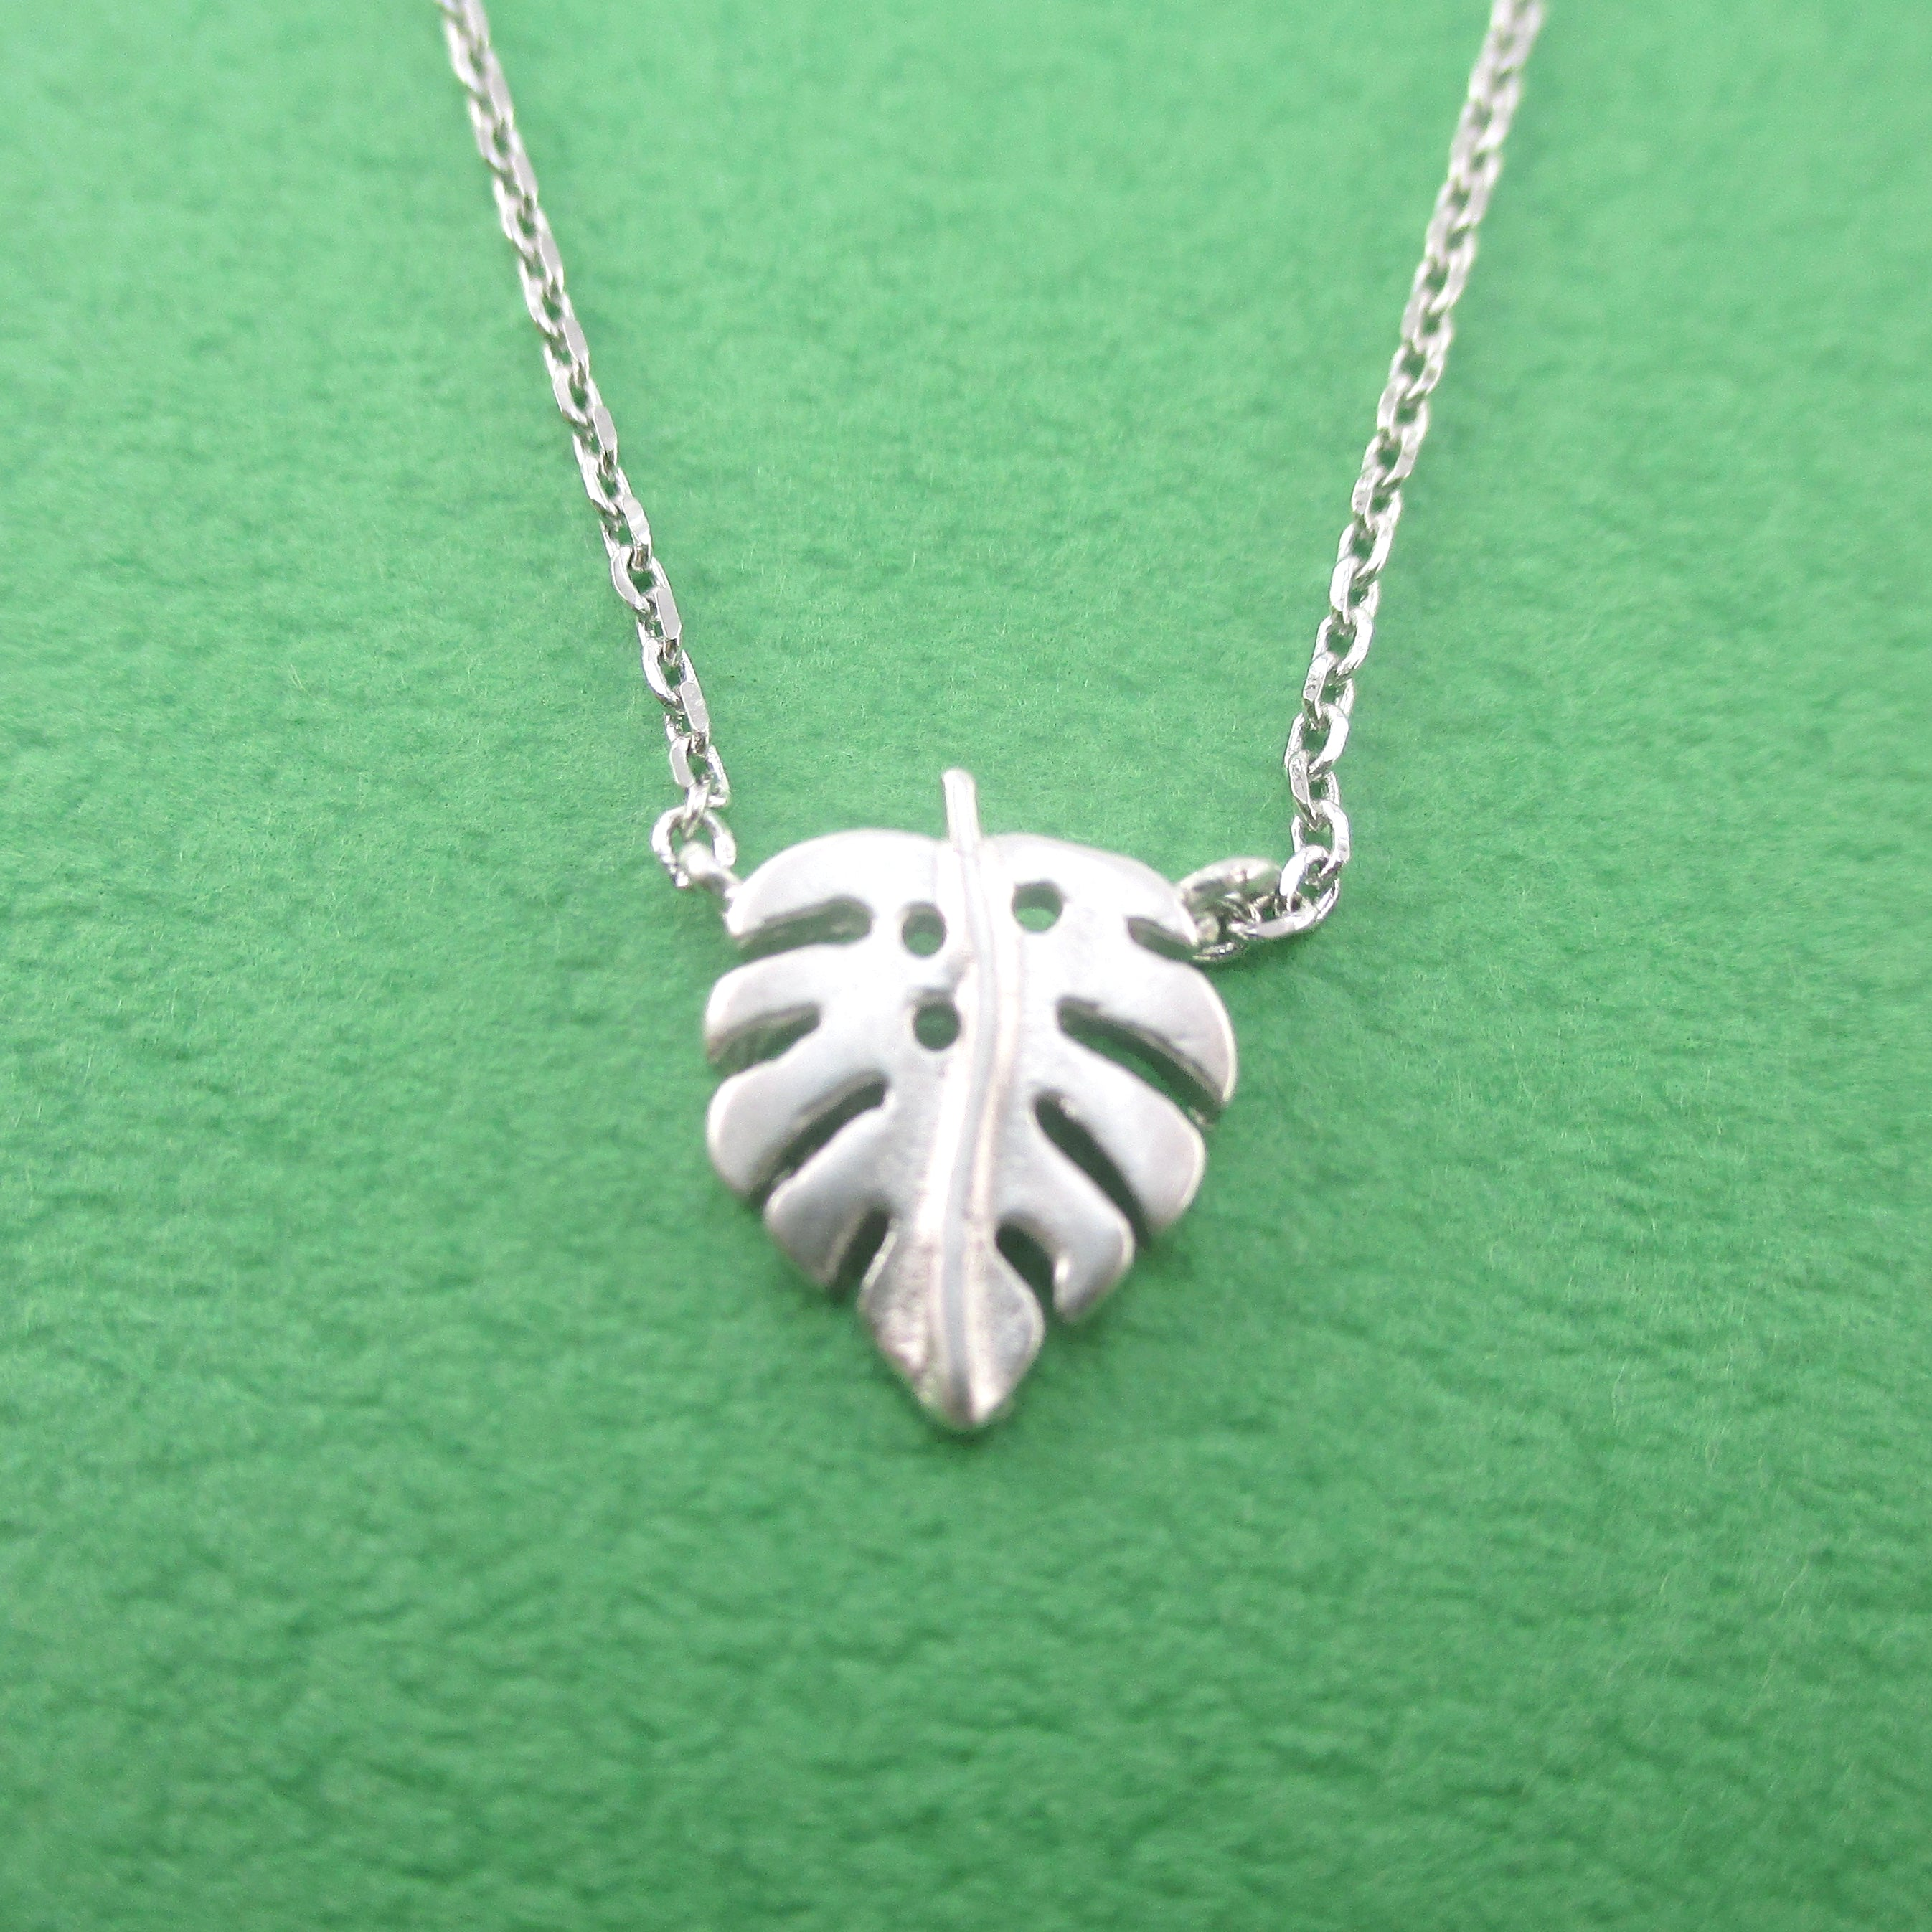 Minimal Swiss Cheese Monstera Plant Leaf Shaped Pendant Necklace In Silver